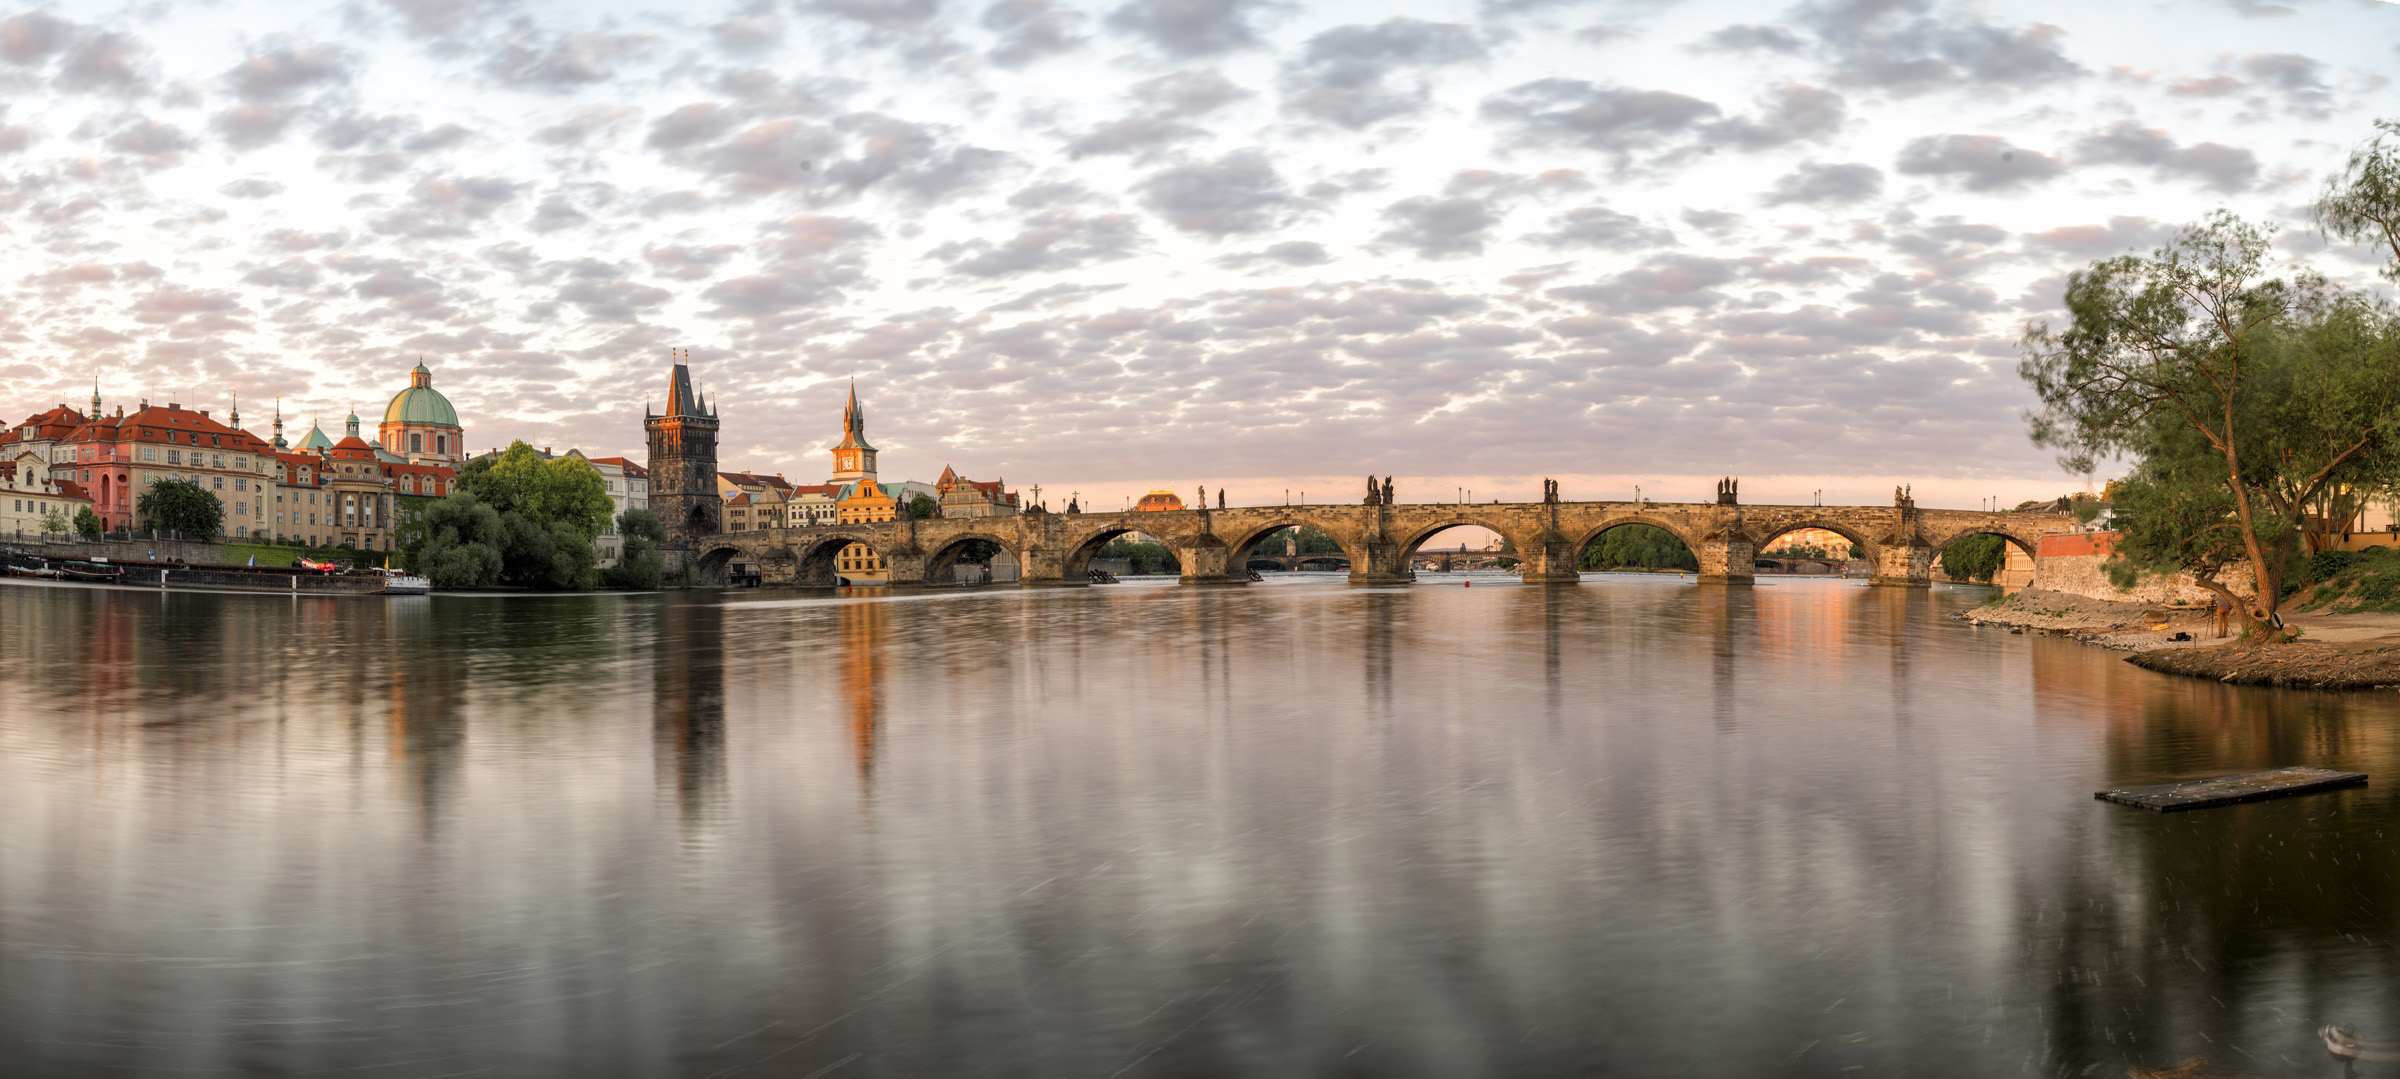 prague_bridge.jpg